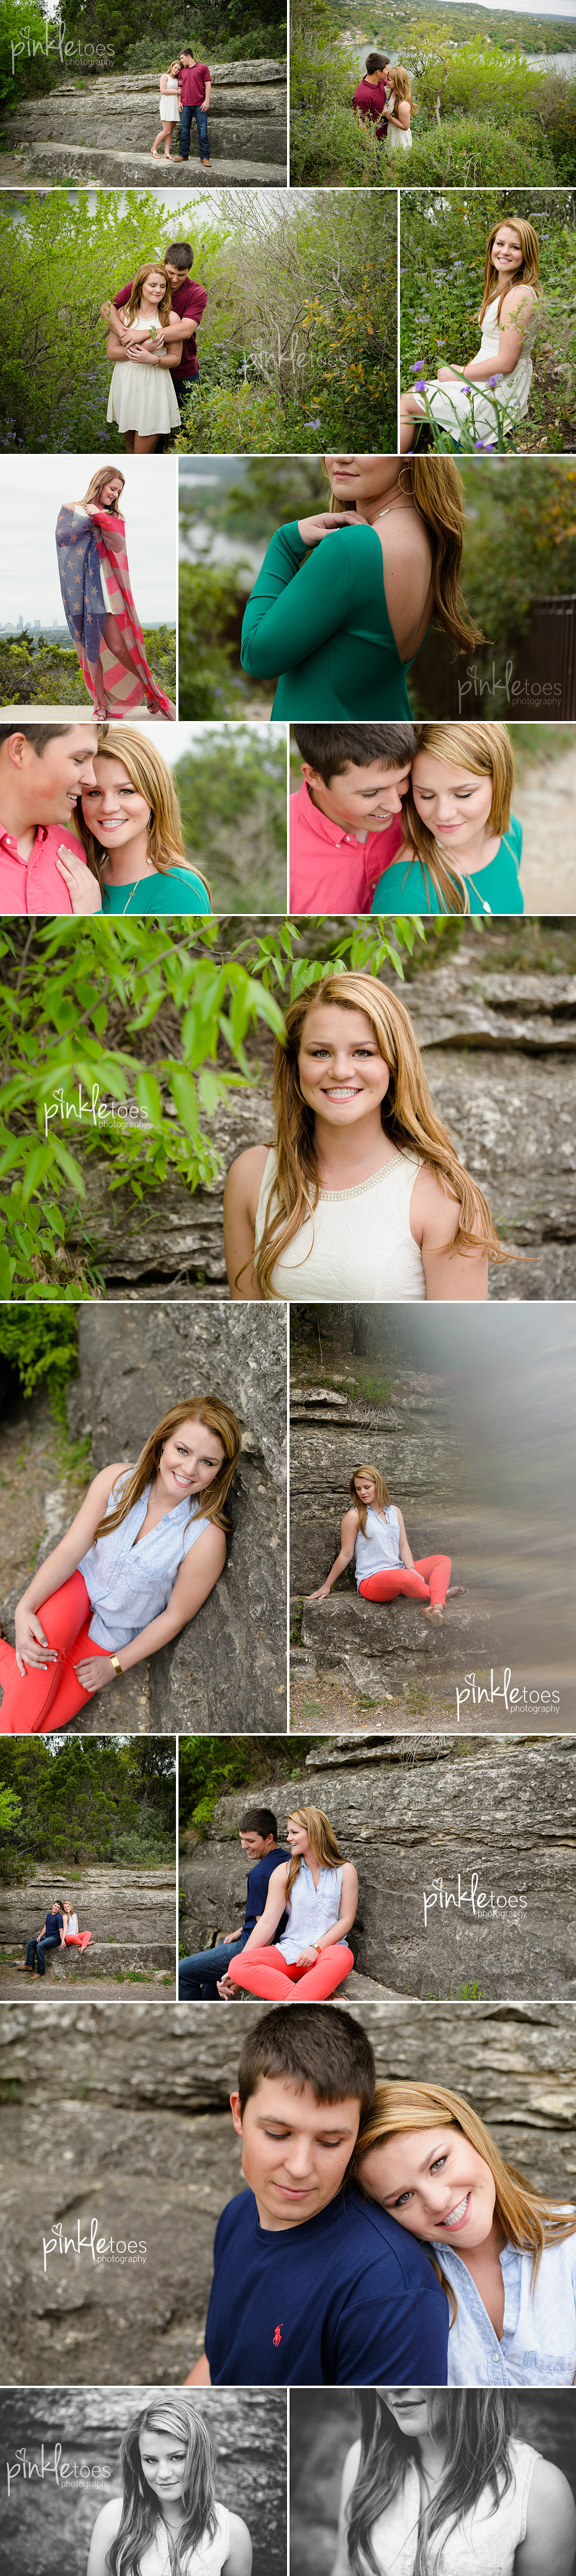 ak-austin-senior-portraits-georgetown-mount-bonnell-couples-engagement-photography-pinkle-toes